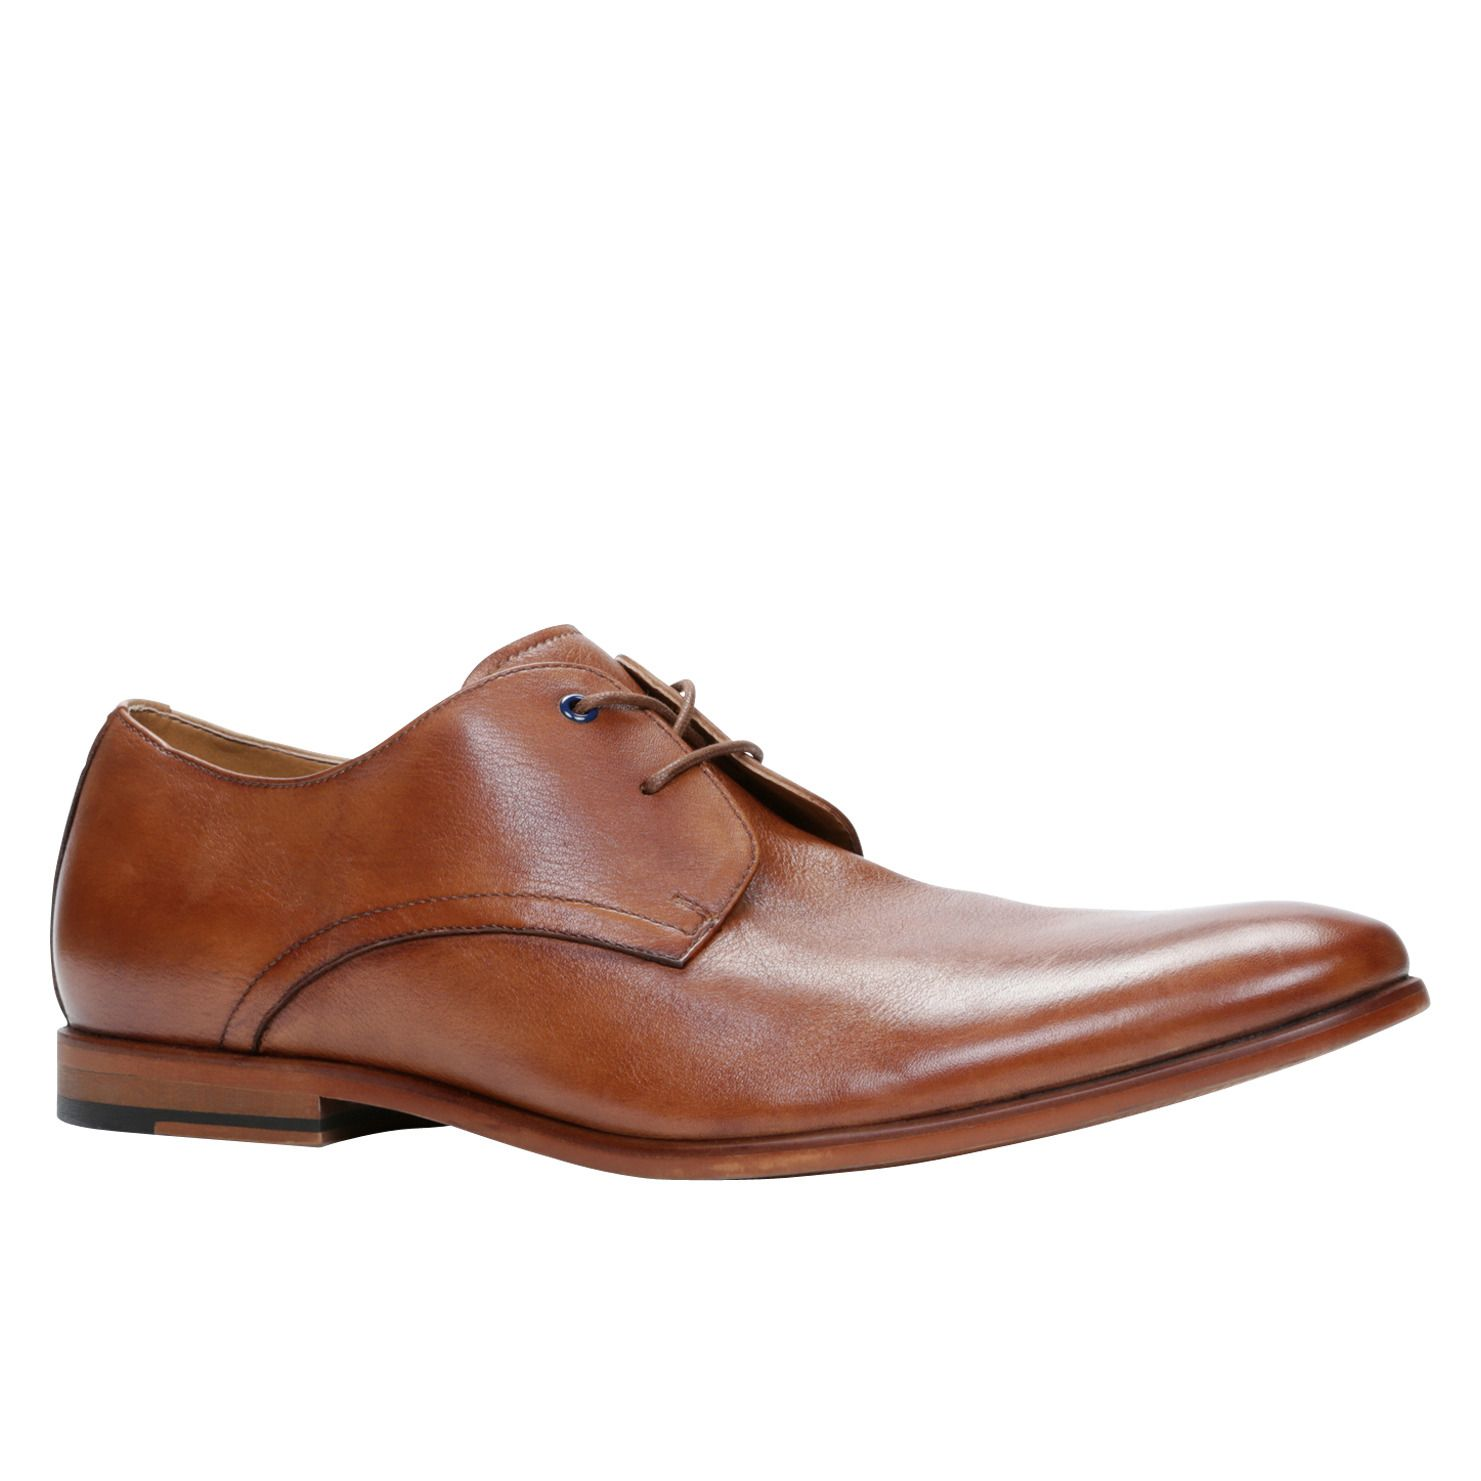 17b3e57c69367 Groom's Shoes: ANDREWS - men's dress lace-ups shoes for sale at ALDO Shoes.